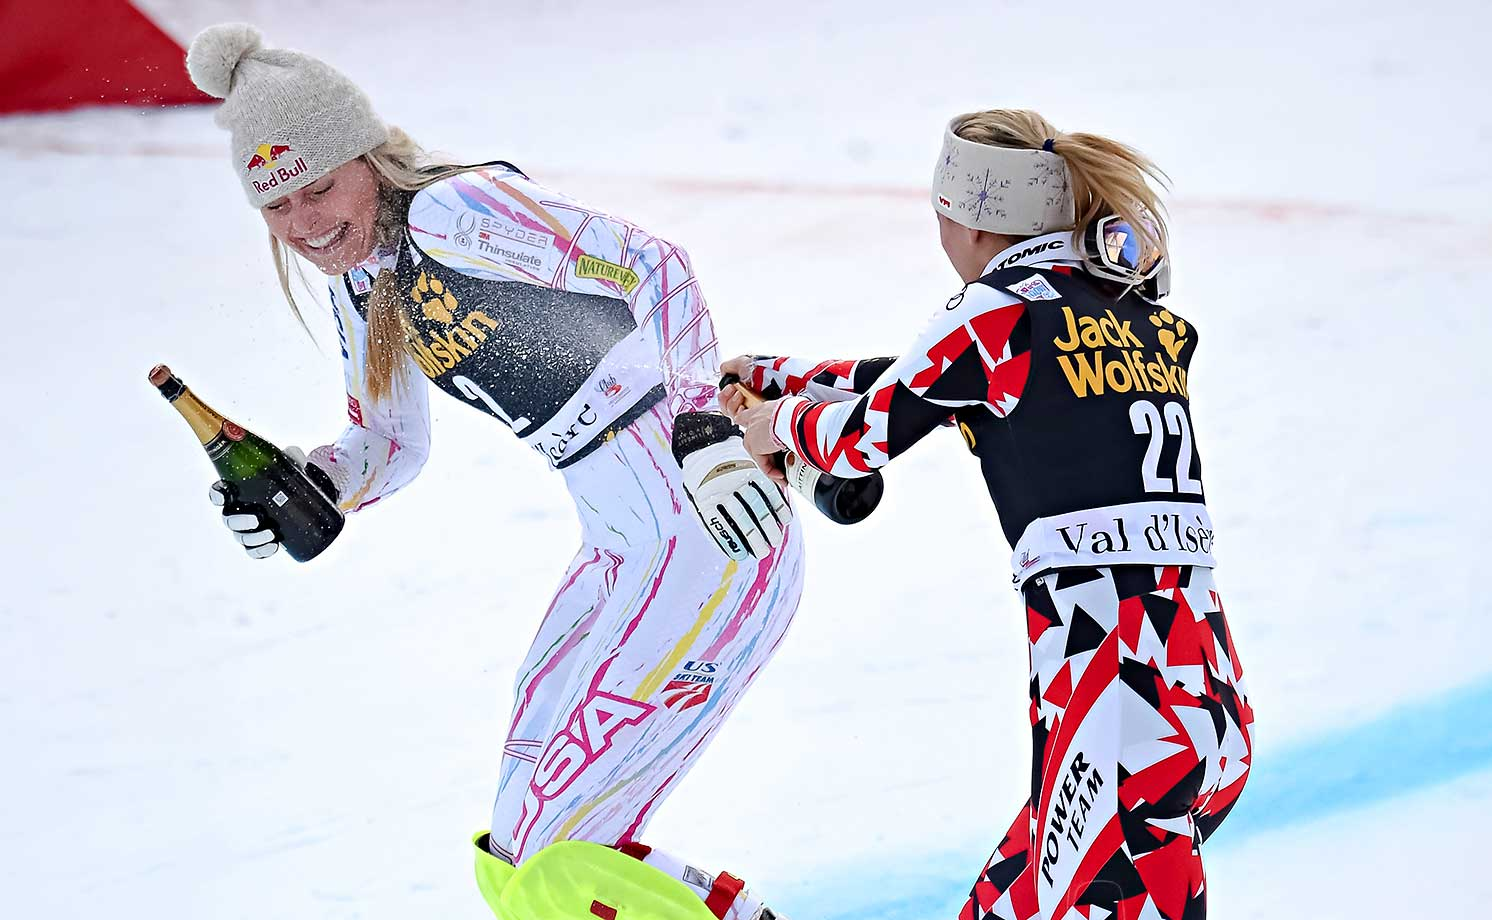 Lindsey Vonn joking around with Cornelia Huetter of Austriaat a December 2015 event in Val d'Isere, France.